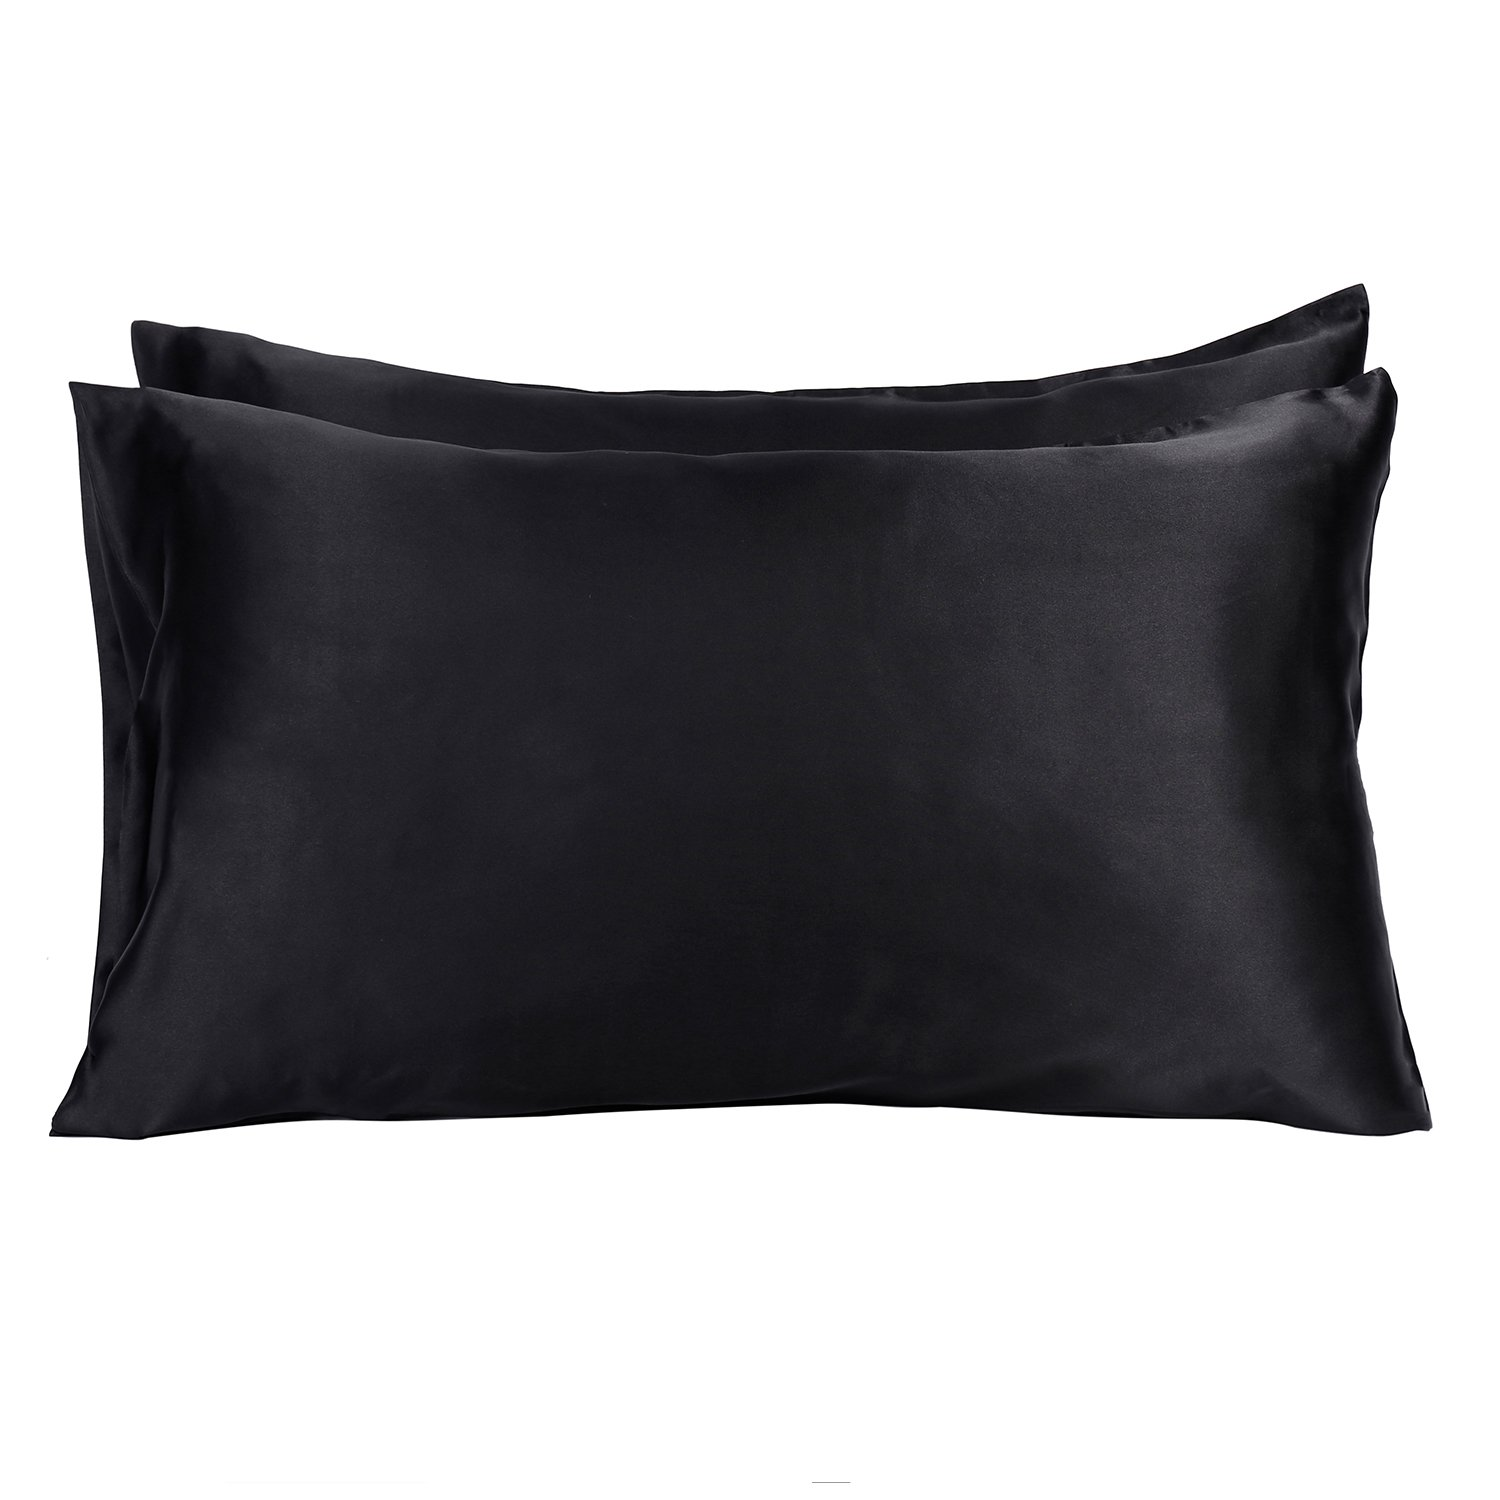 MOVEONSTEP Pillow Cases 2 Pack Housewife Bedroom Pillow Covers Plain Silky-soft Brushed Microfiber Pillowcases Queen Size 75 * 50cm (Black)